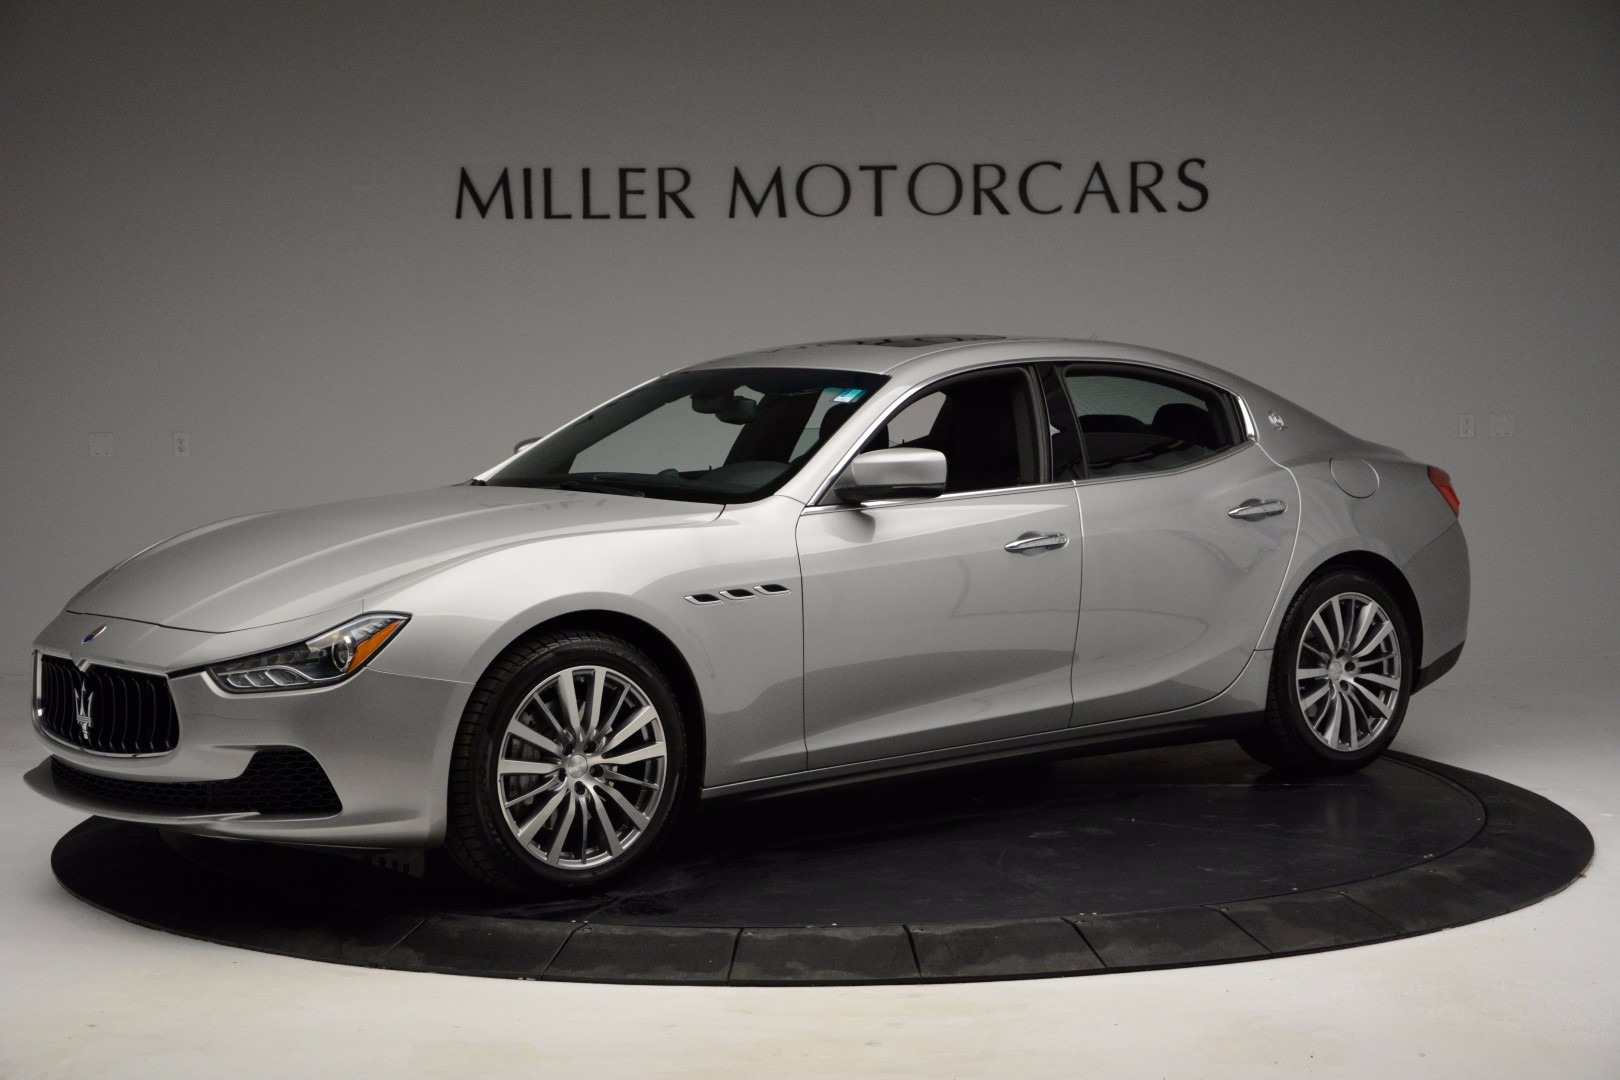 Used 2014 Maserati Ghibli for sale Sold at McLaren Greenwich in Greenwich CT 06830 1